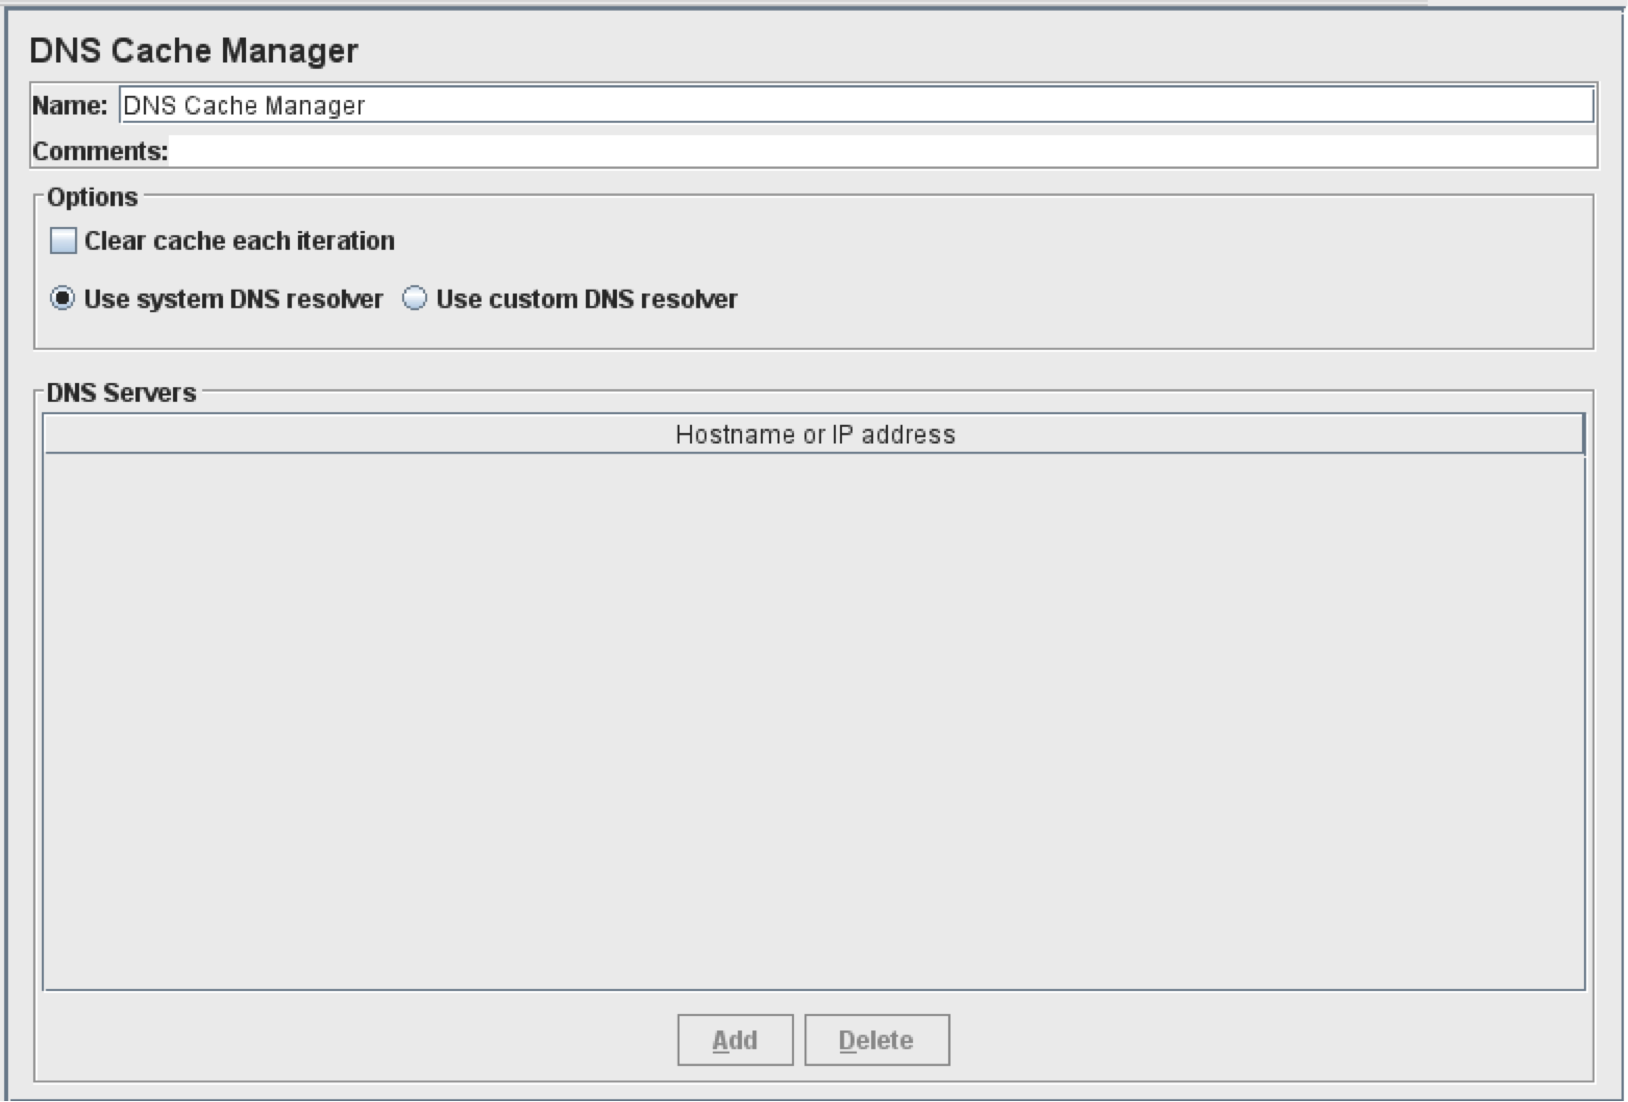 how to clear dns resolver cashe win 8